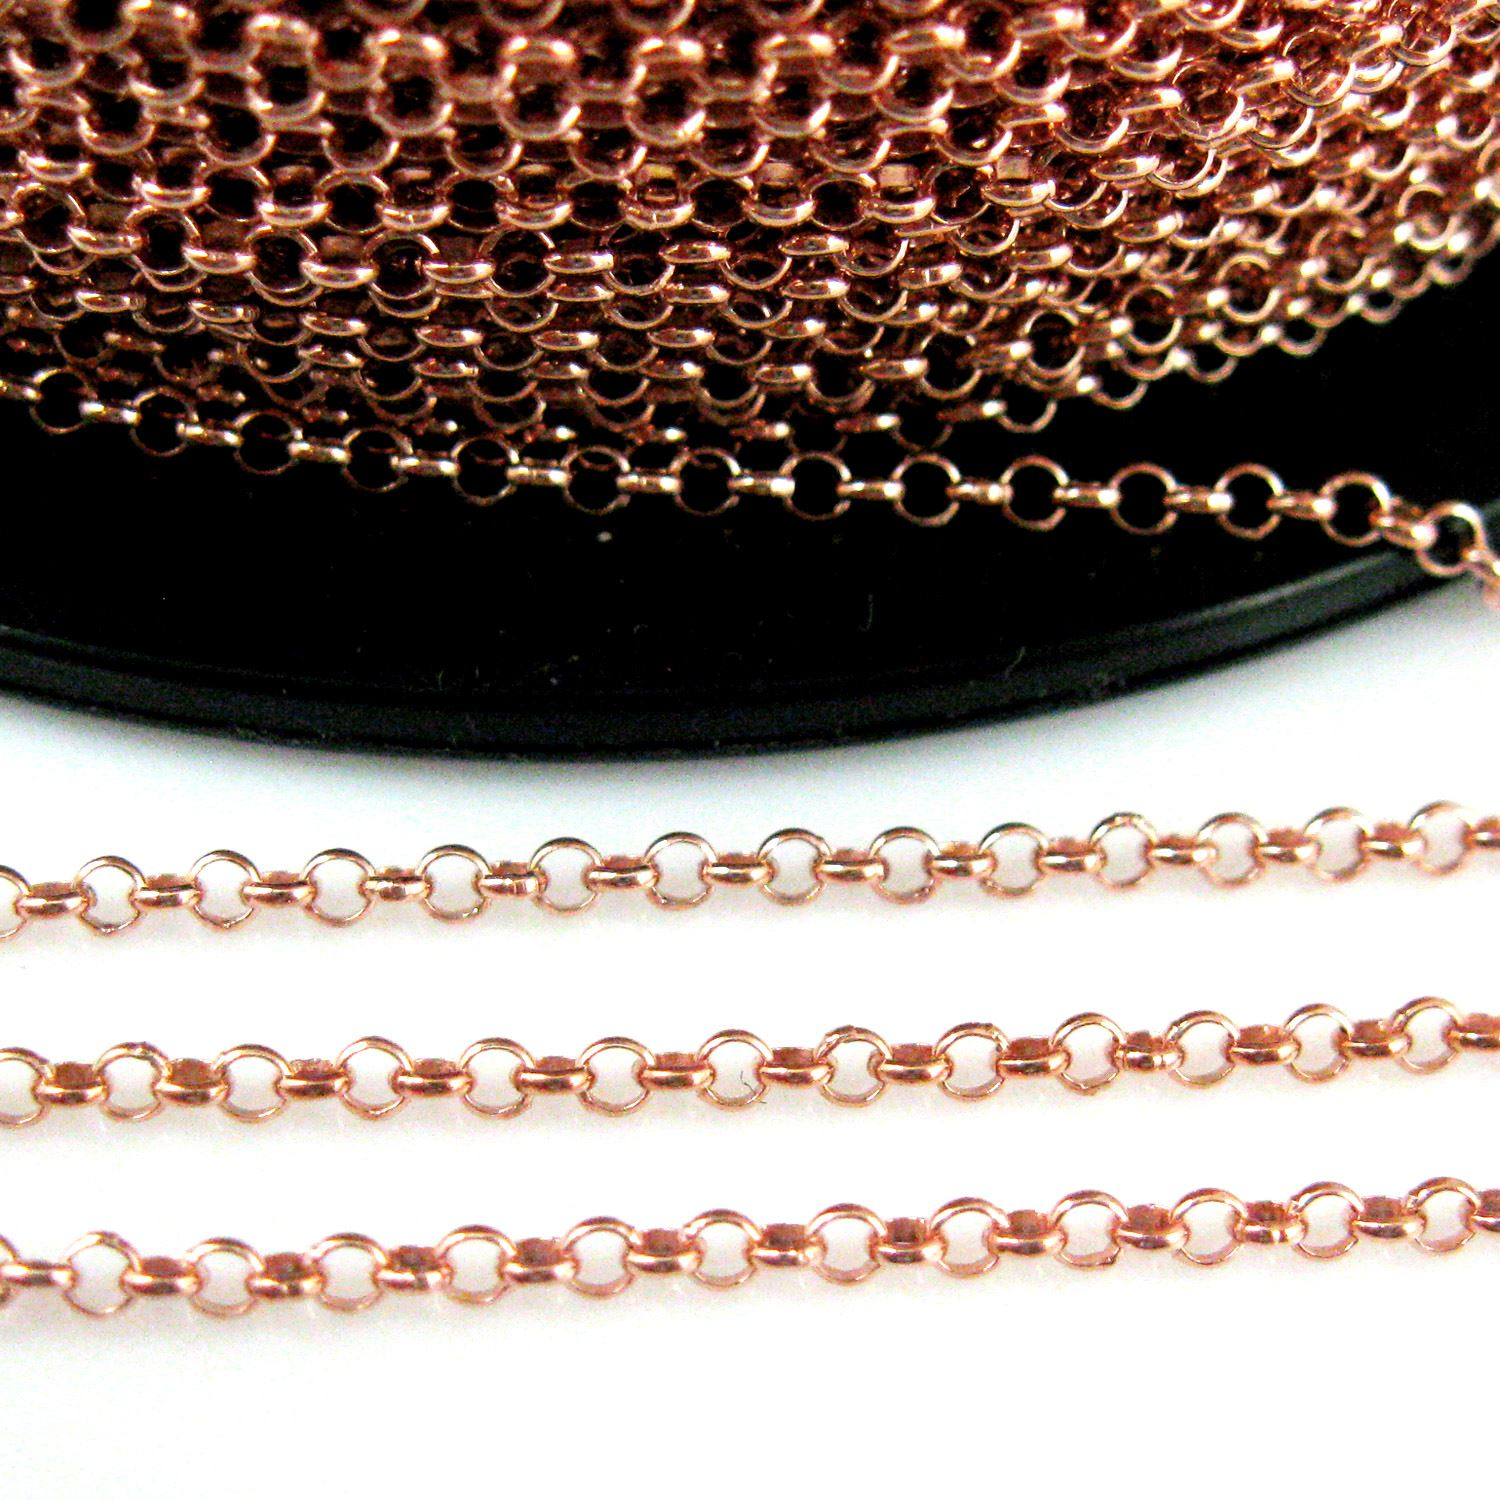 Rose Gold over Sterling Silver 2mm rolo Chain - Gold Plated over Sterling Silver Chain - 2mm Rolo Chain. Bulk Unfinished By the Foot